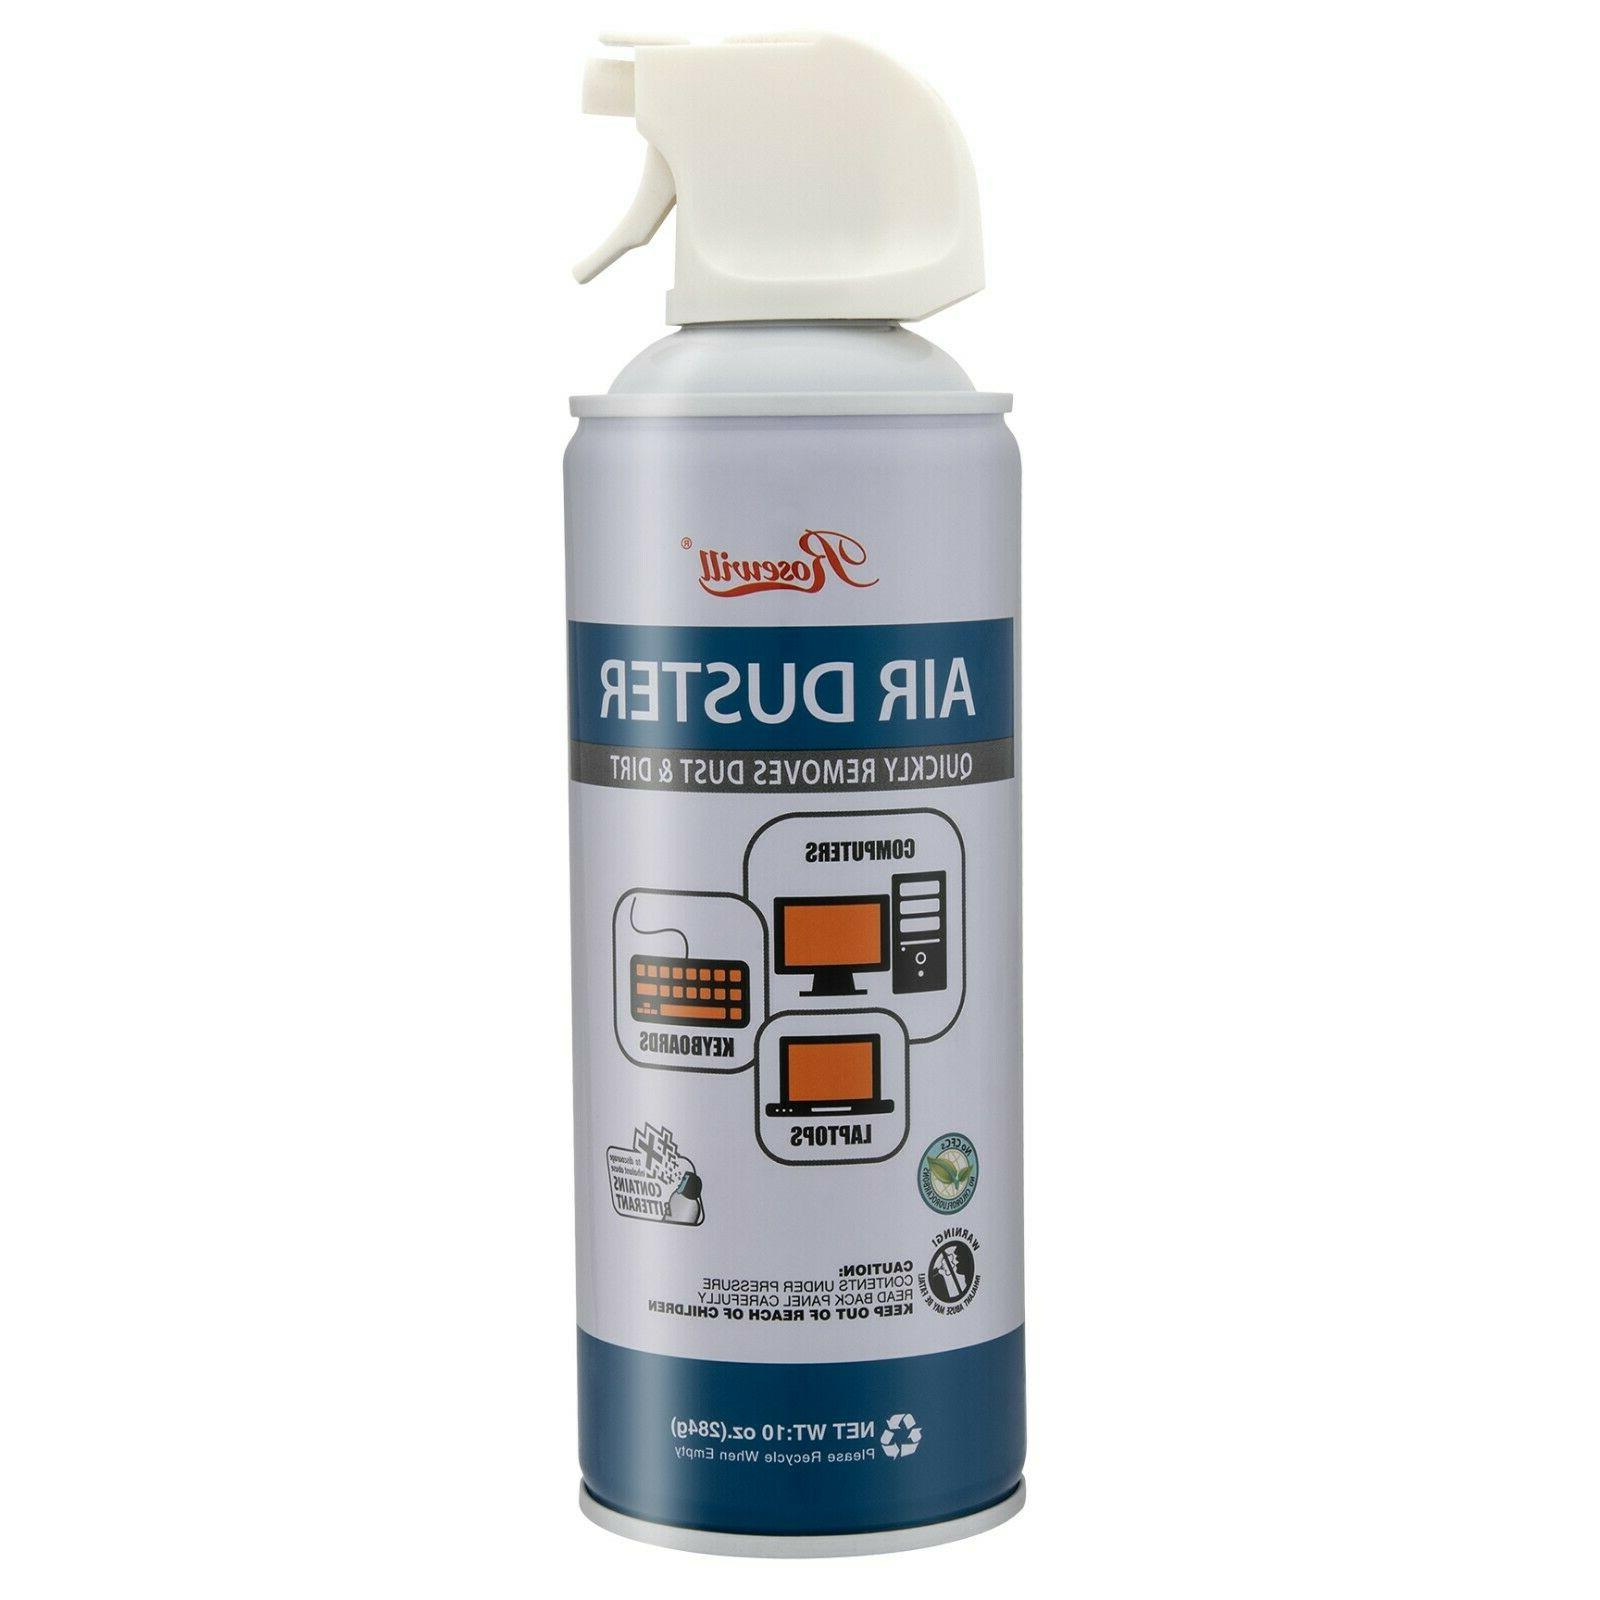 compressed air duster 10 oz gas duster